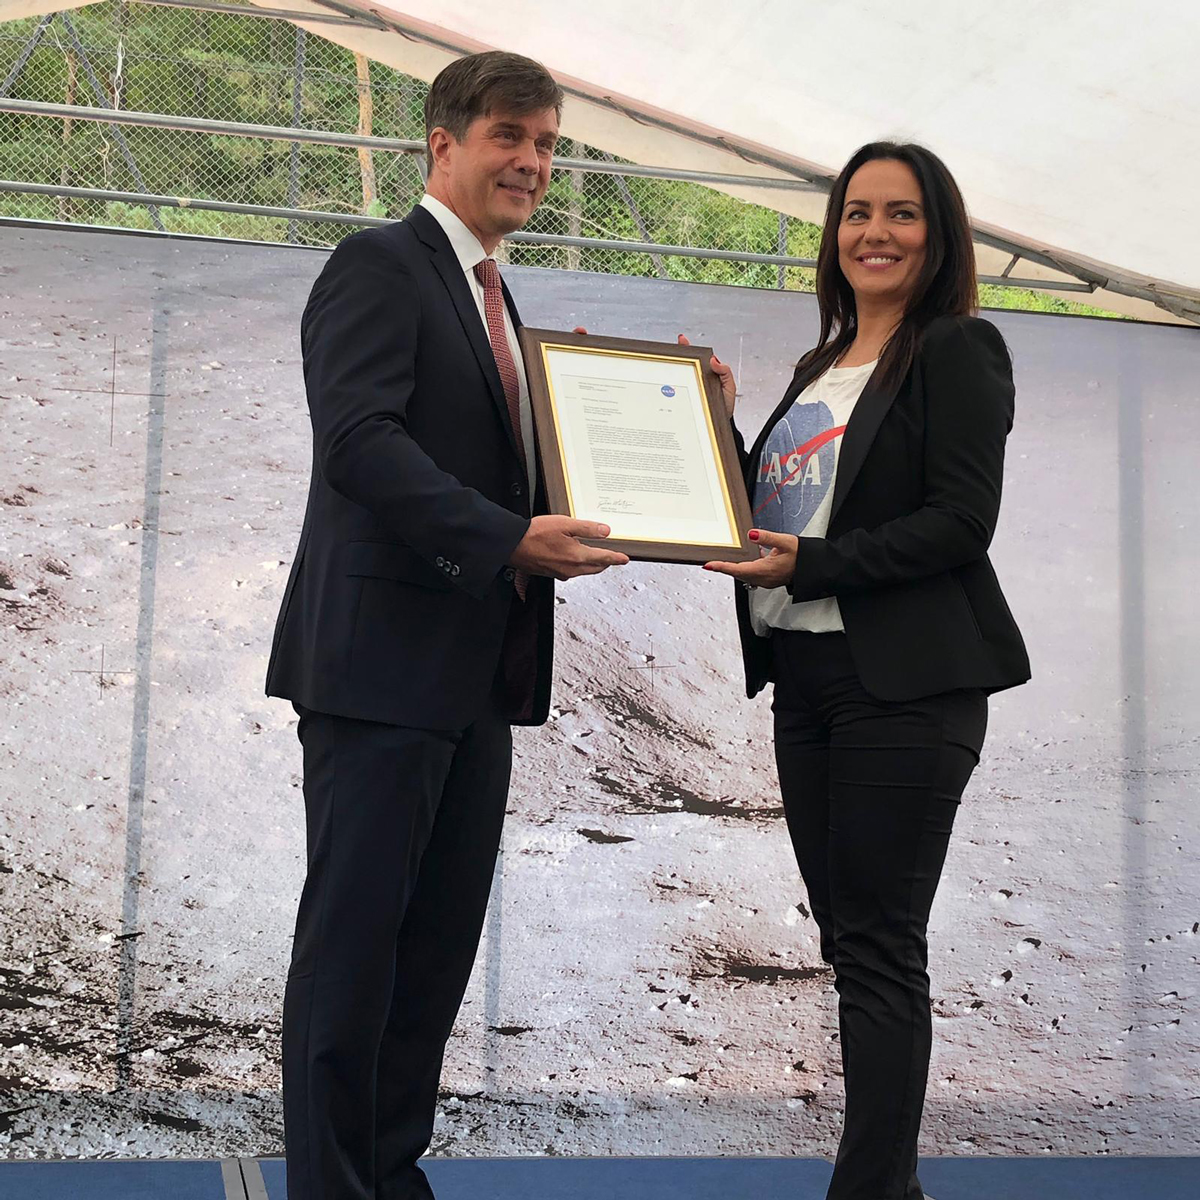 Eric Nelson, the U.S. Ambassador to Bosnia and Herzegovina, presents a framed letter to the Snezana Ružičić, mayor of the Balkan municipality of Jezero. The letter, from NASA's director of Mars Exploration, James Watzin, honored the connection between the small Balkan town and Jezero Crater the landing site of NASA's upcoming Mars 2020 mission.